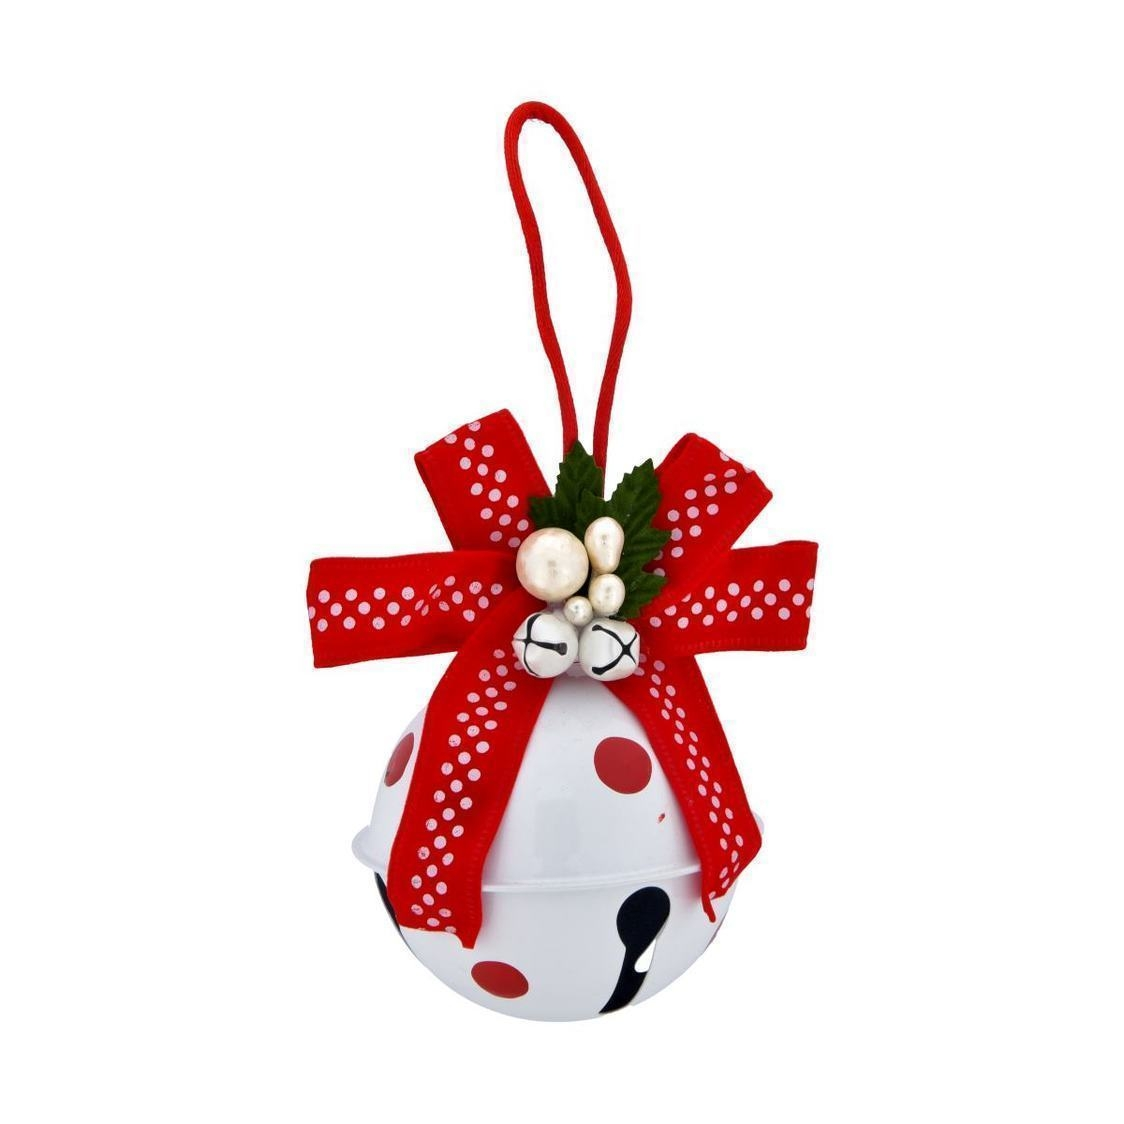 Jingle Bell Ball With Bow Ornament White